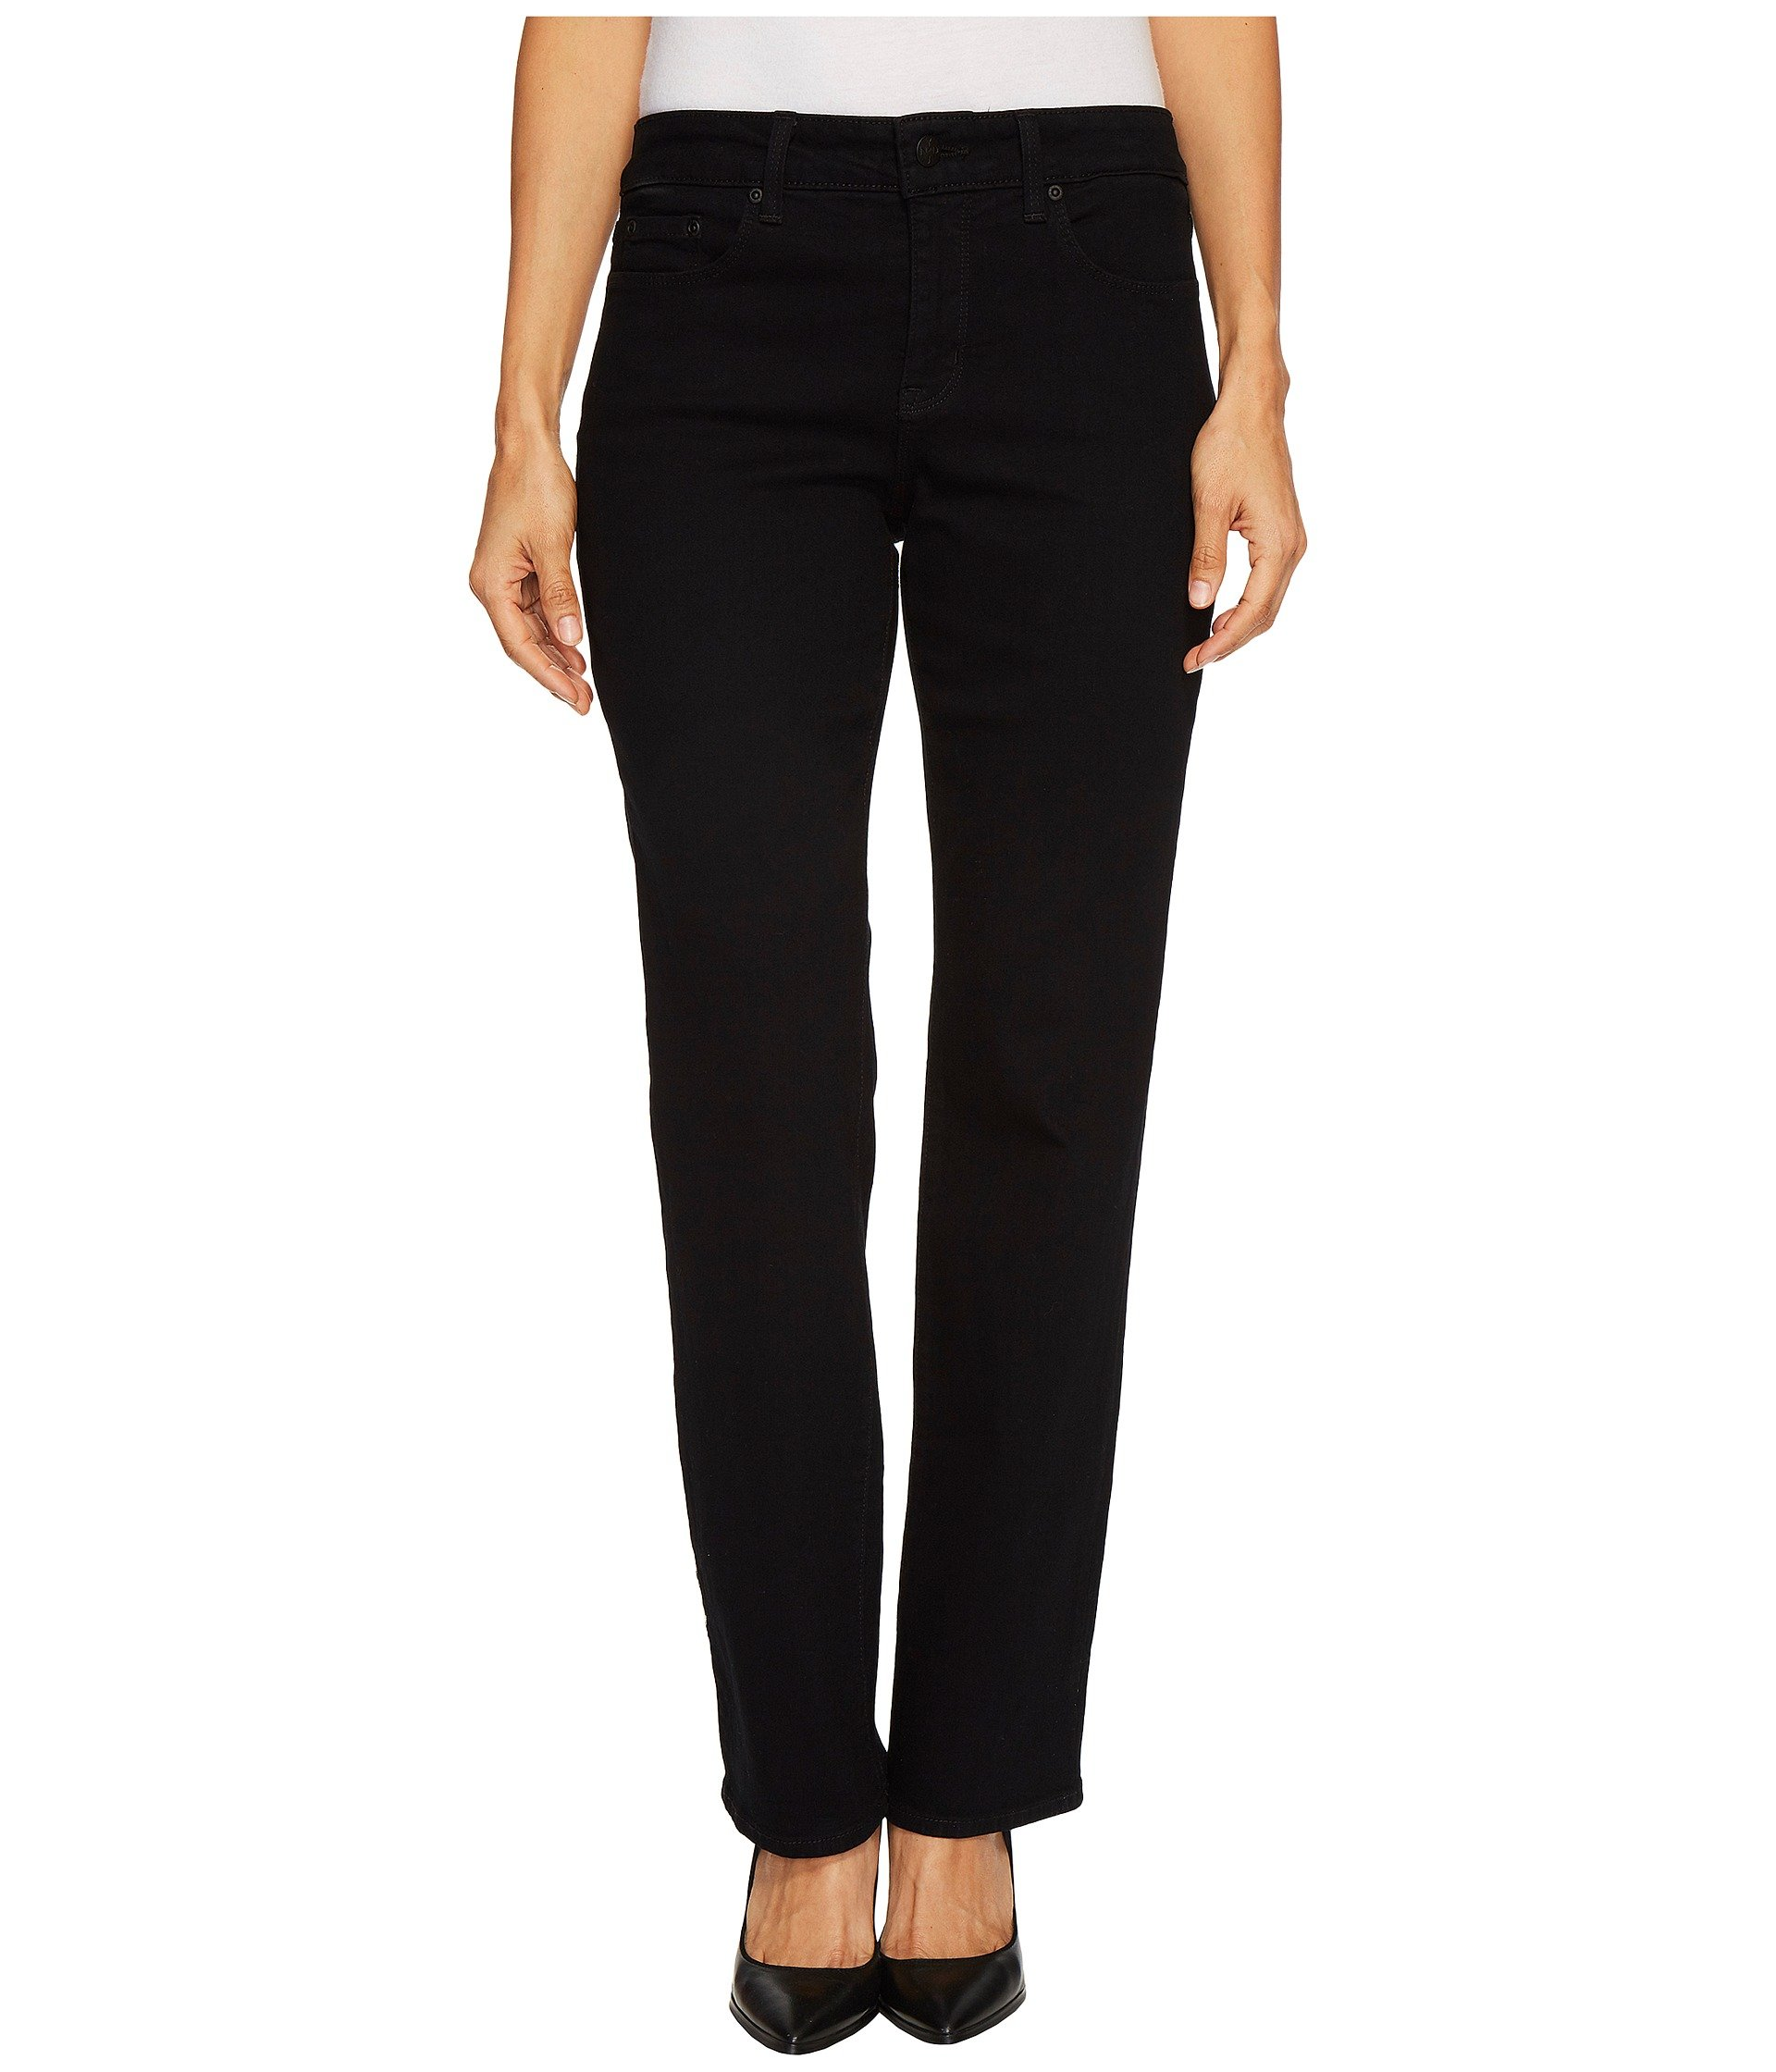 NYDJ Women's Petite Size Marilyn Straight Leg Jeans, Dark Black, 10P